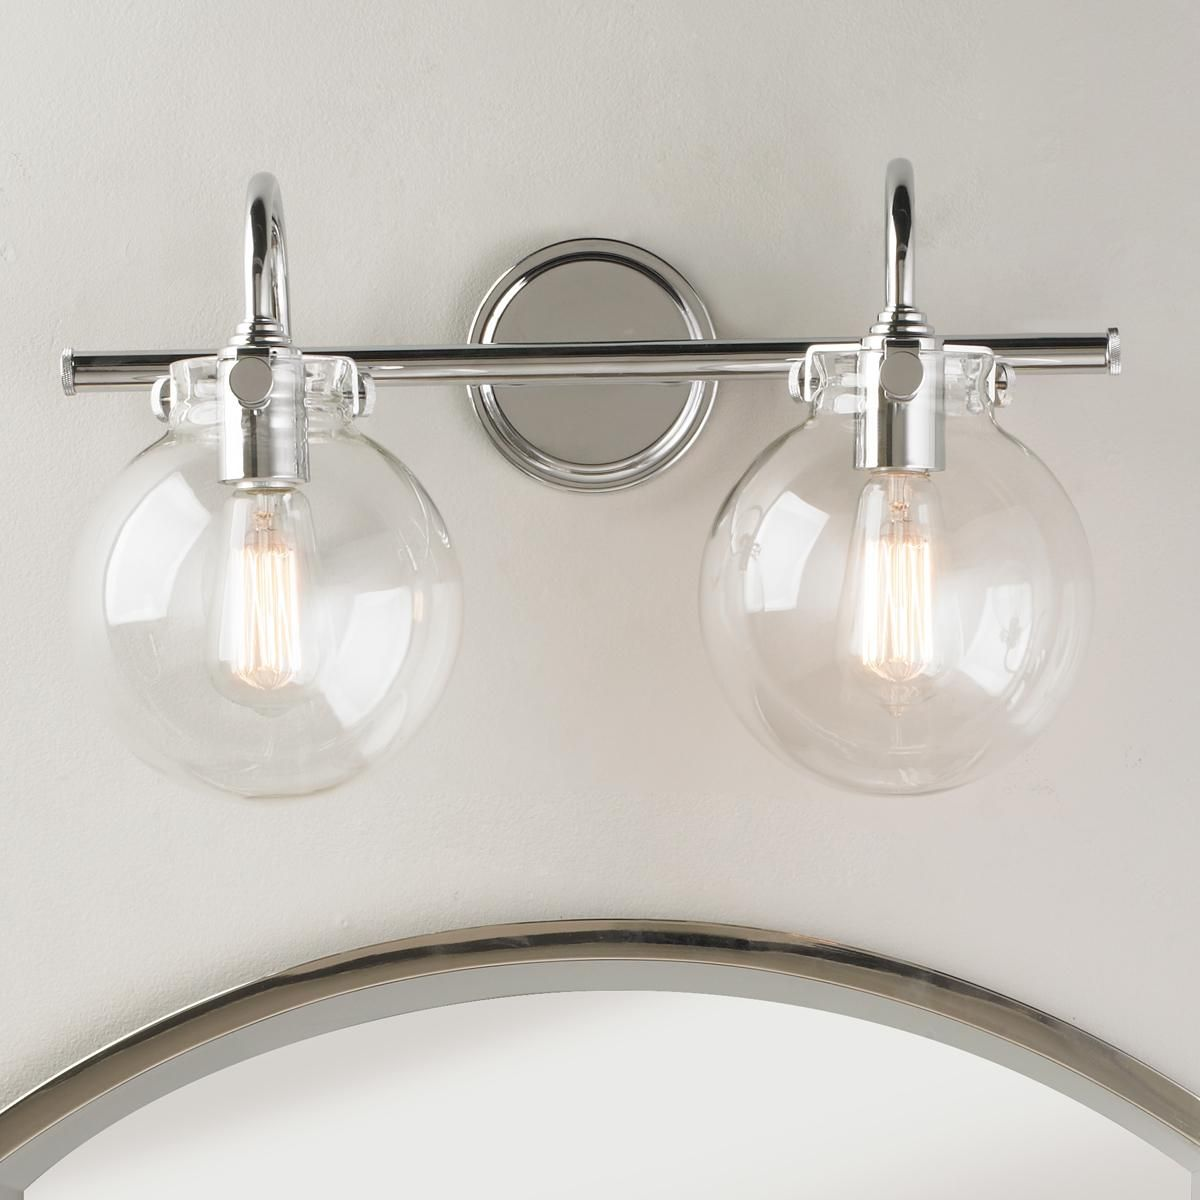 Retro glass globe bath light 2 light bath light globe - Images of bathroom vanity lighting ...